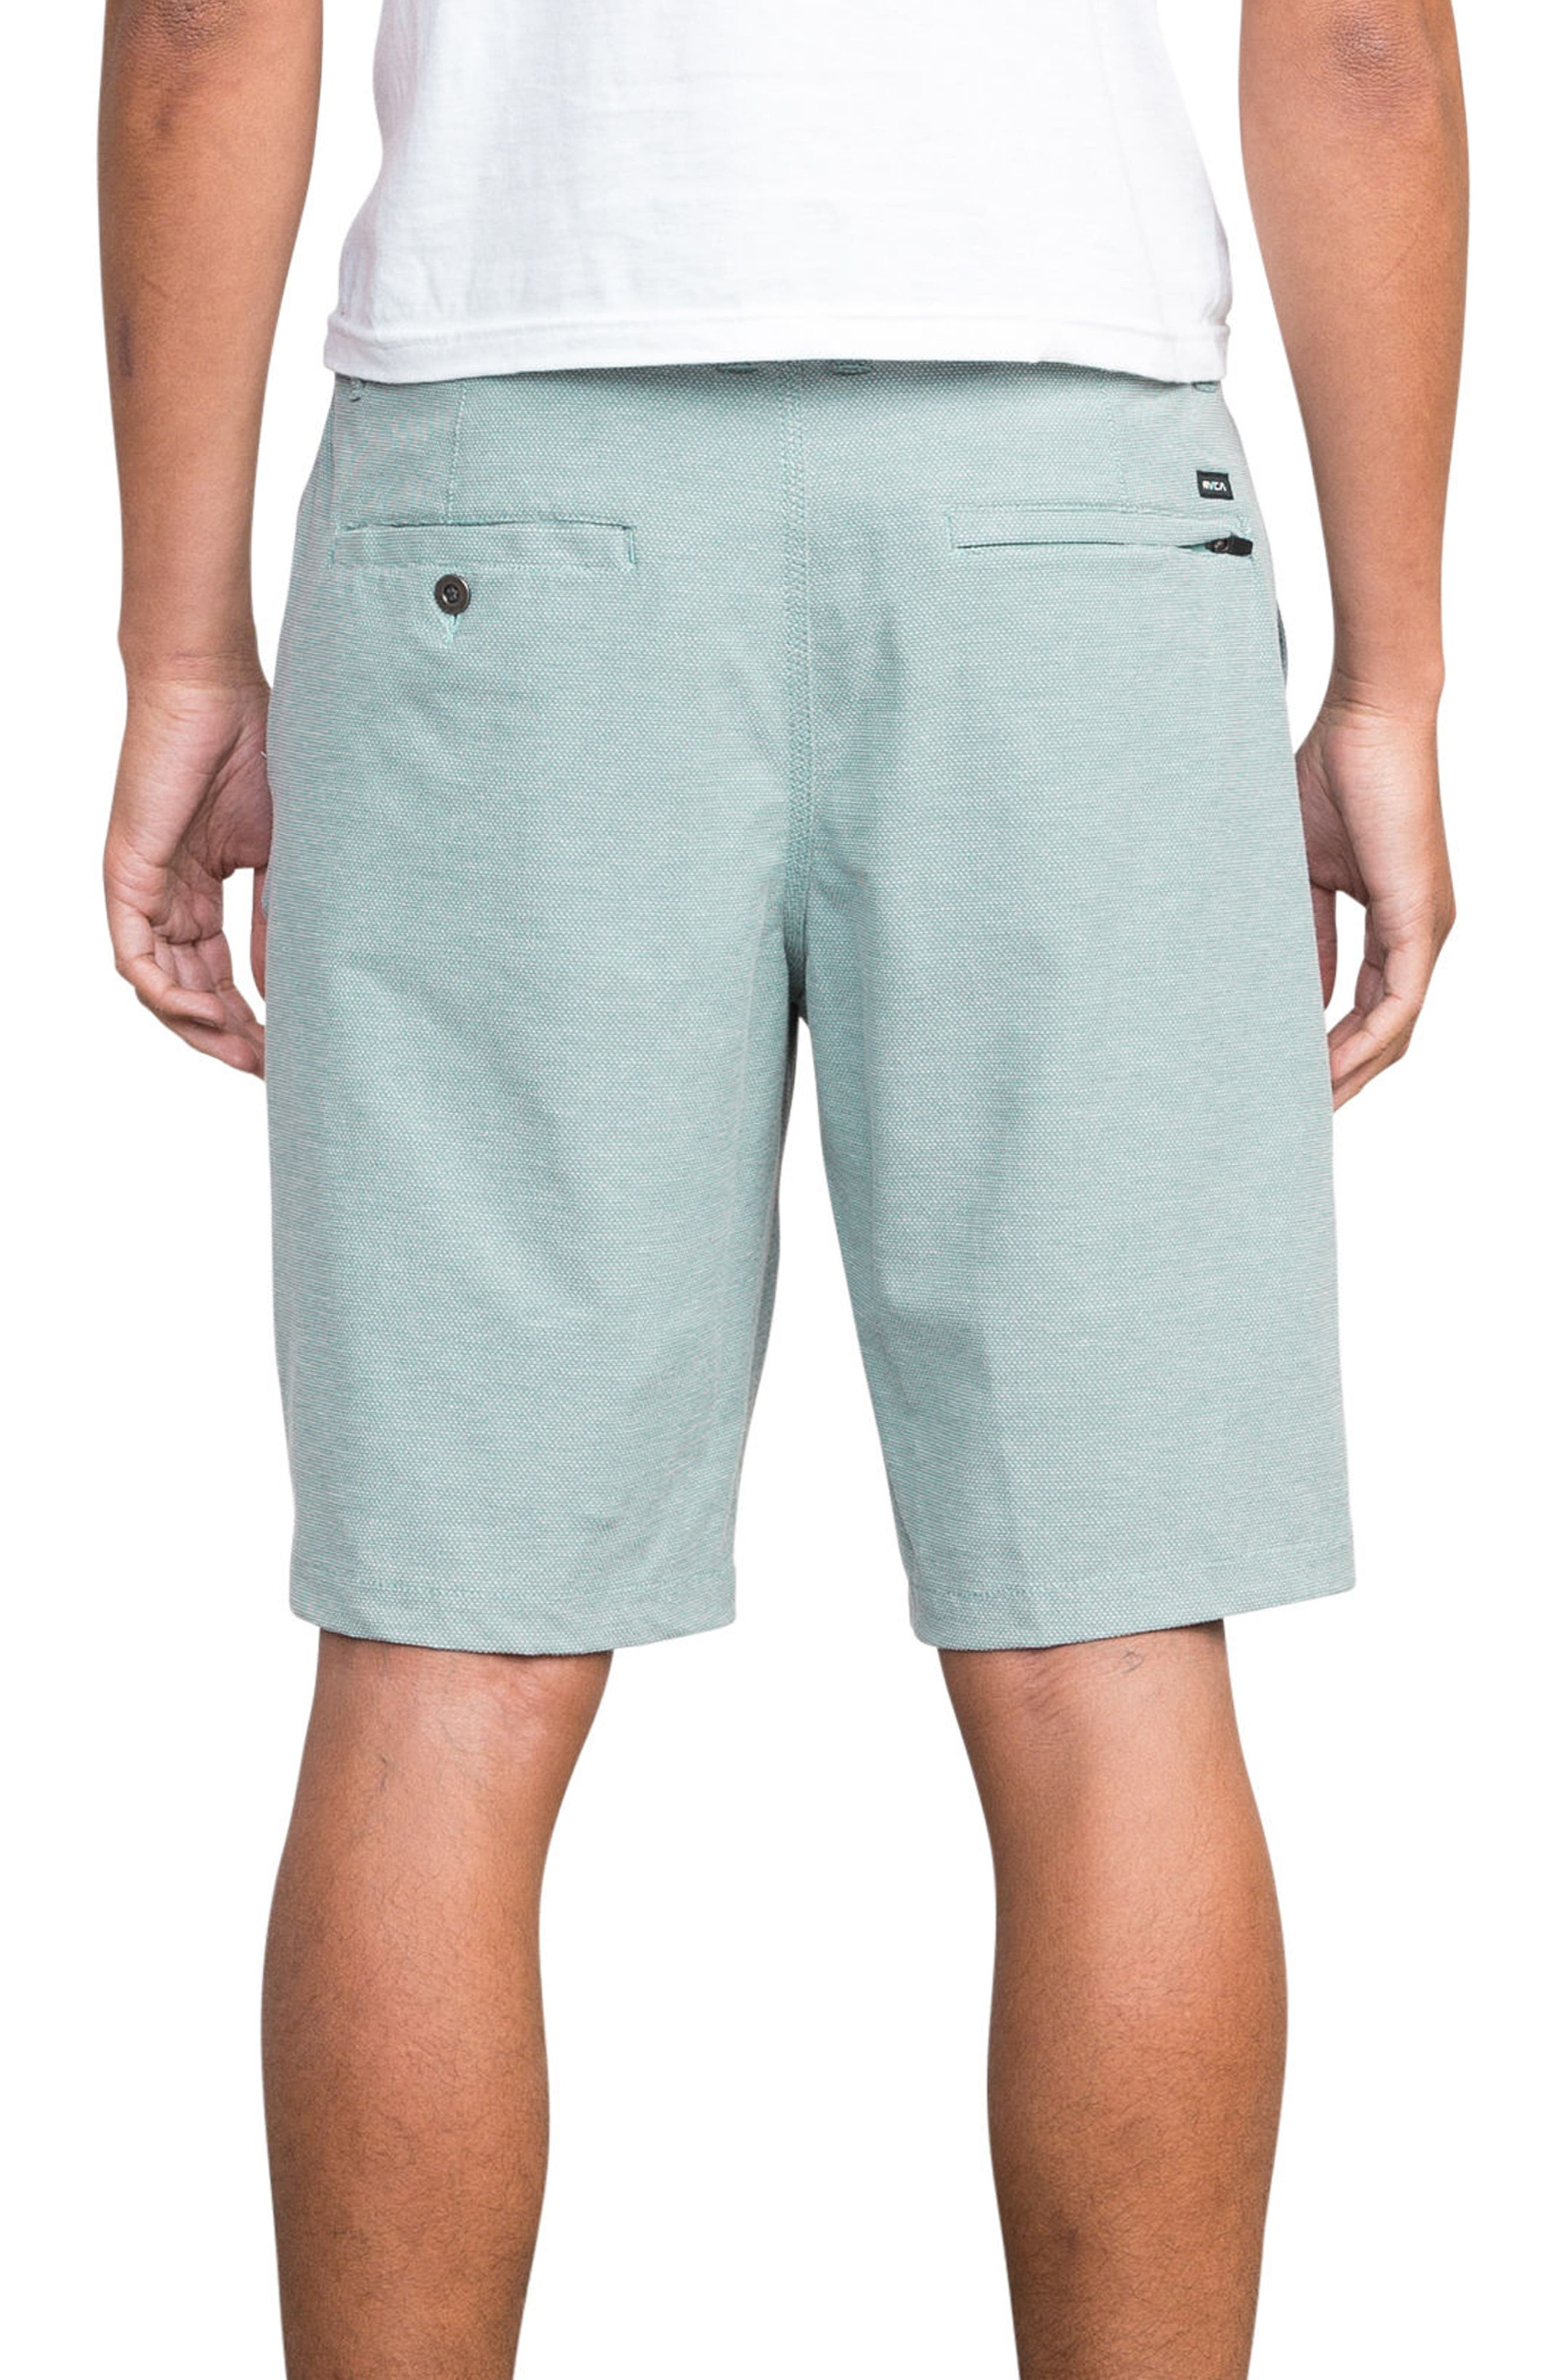 Holidaze Hybrid Shorts,                             Alternate thumbnail 2, color,                             PINE TREE